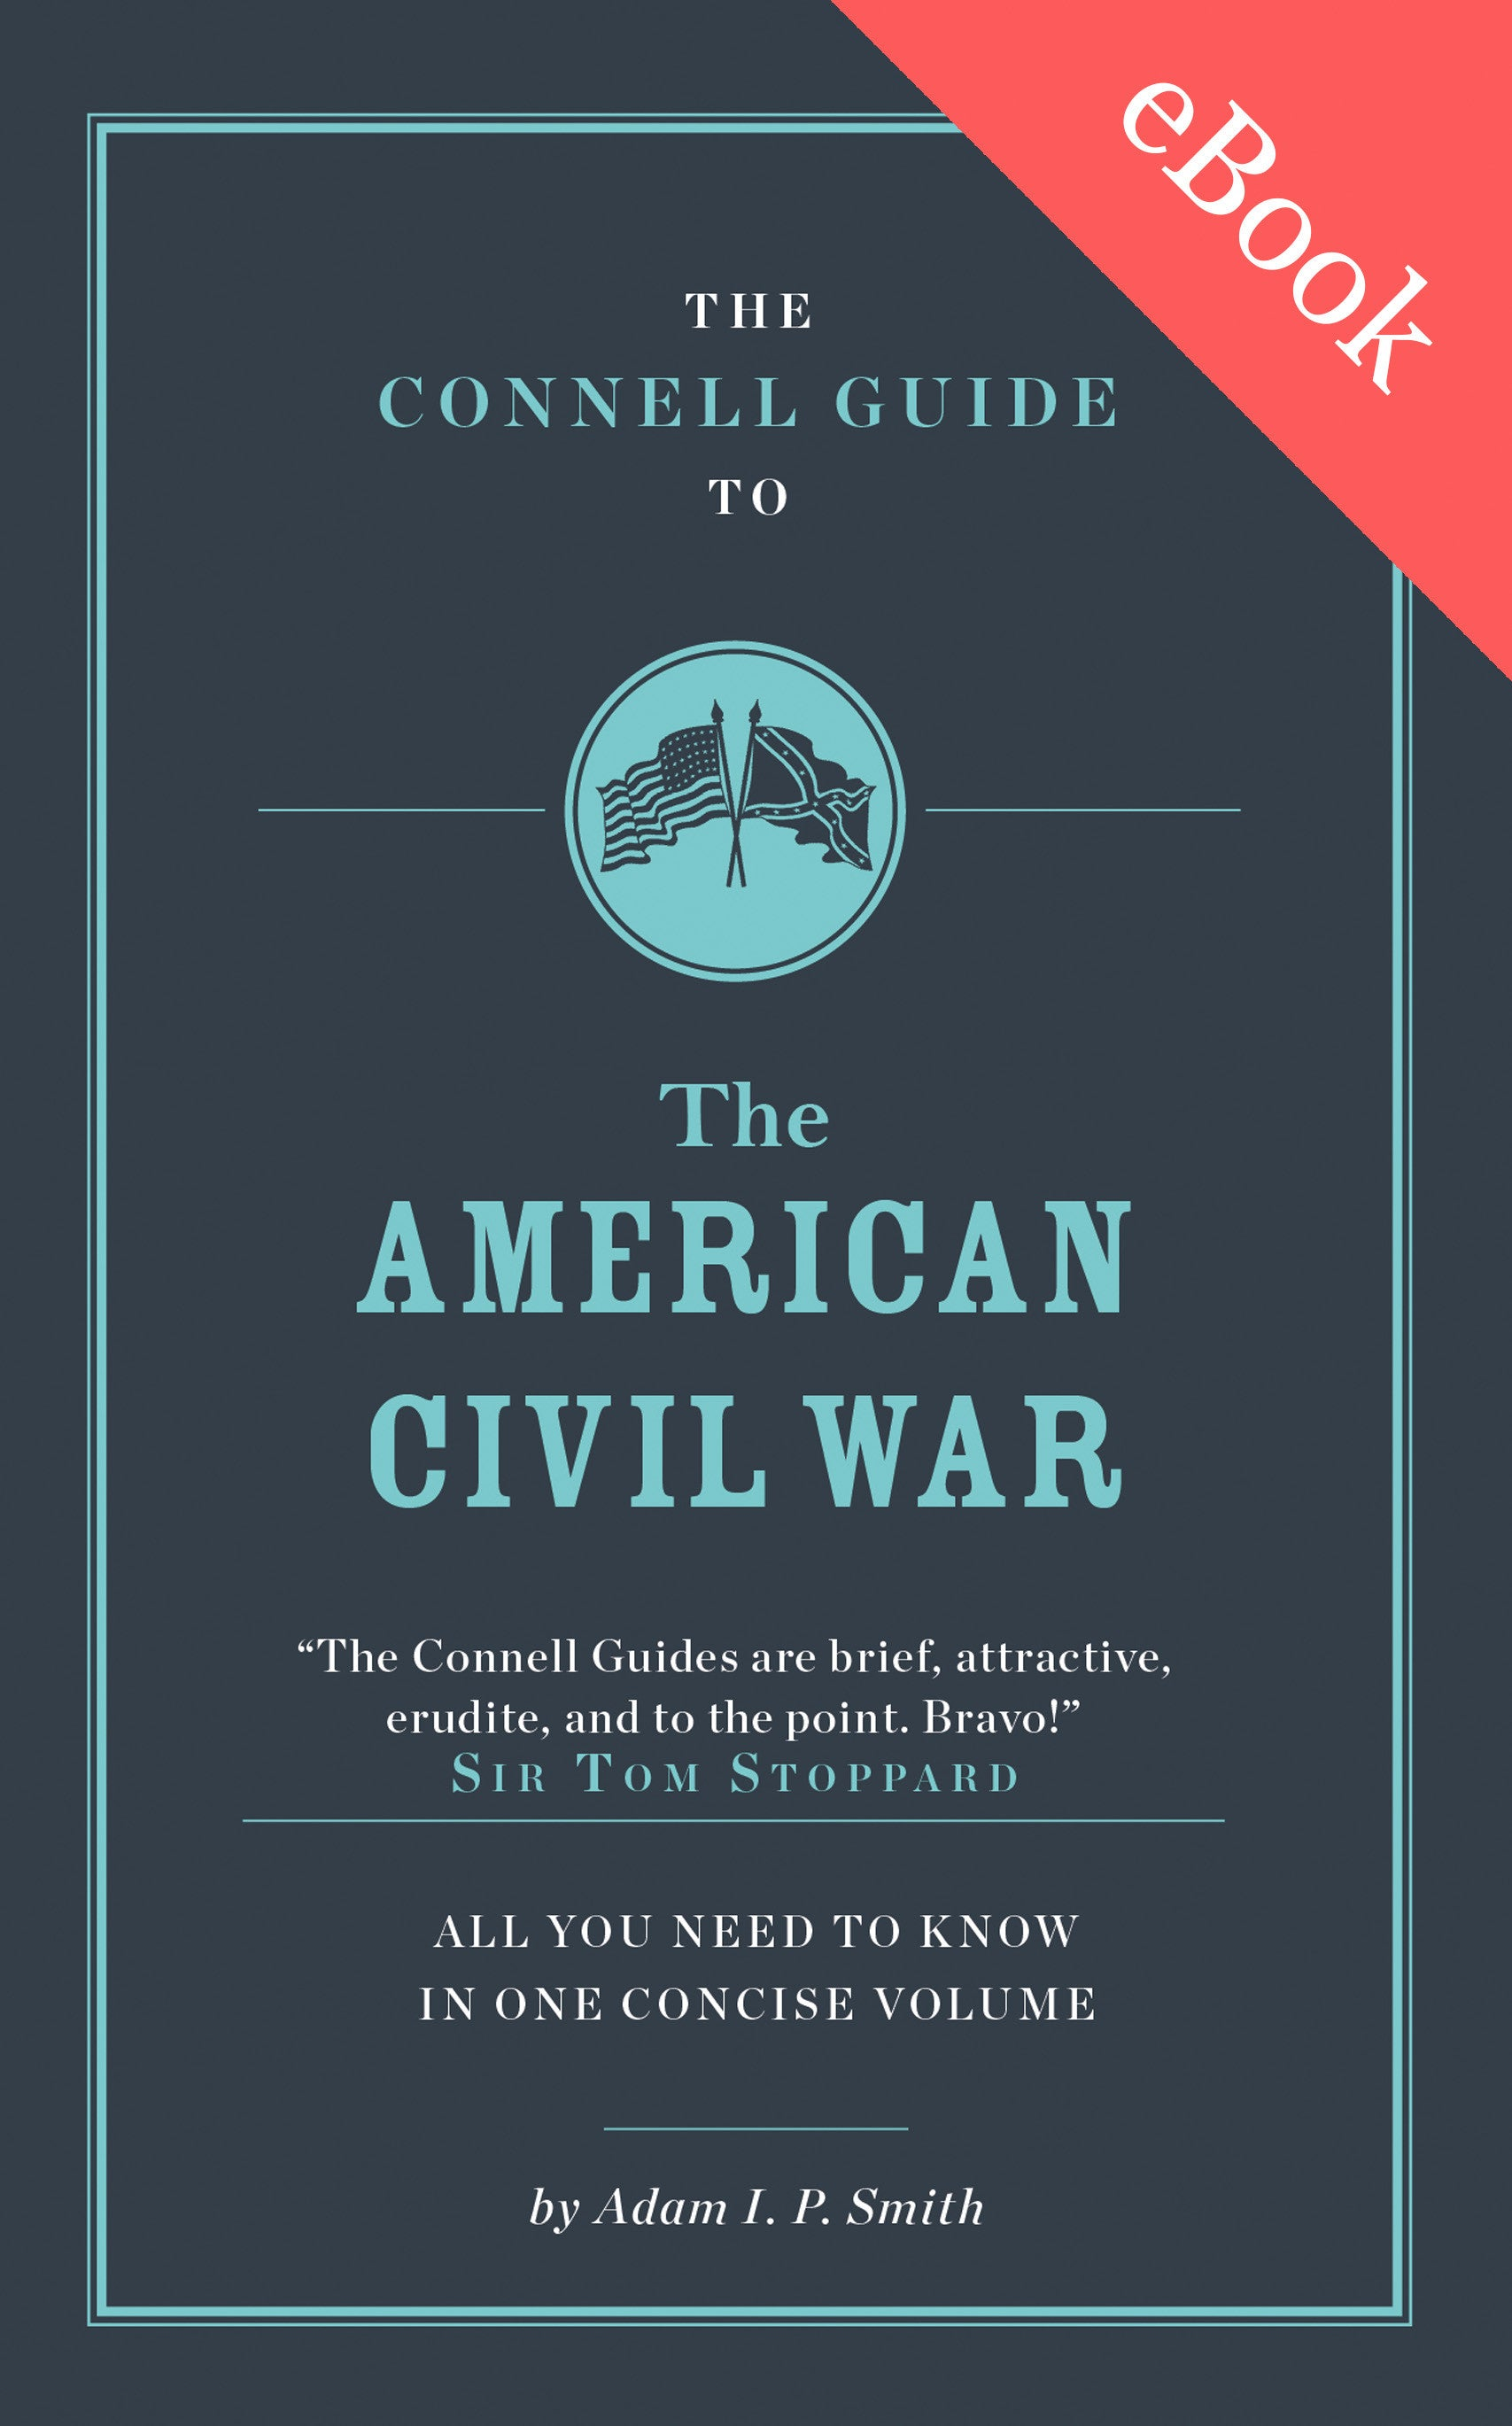 the connell guide to the american civil war available now rh connellguides com Adam Bible Study Adam Bible Study